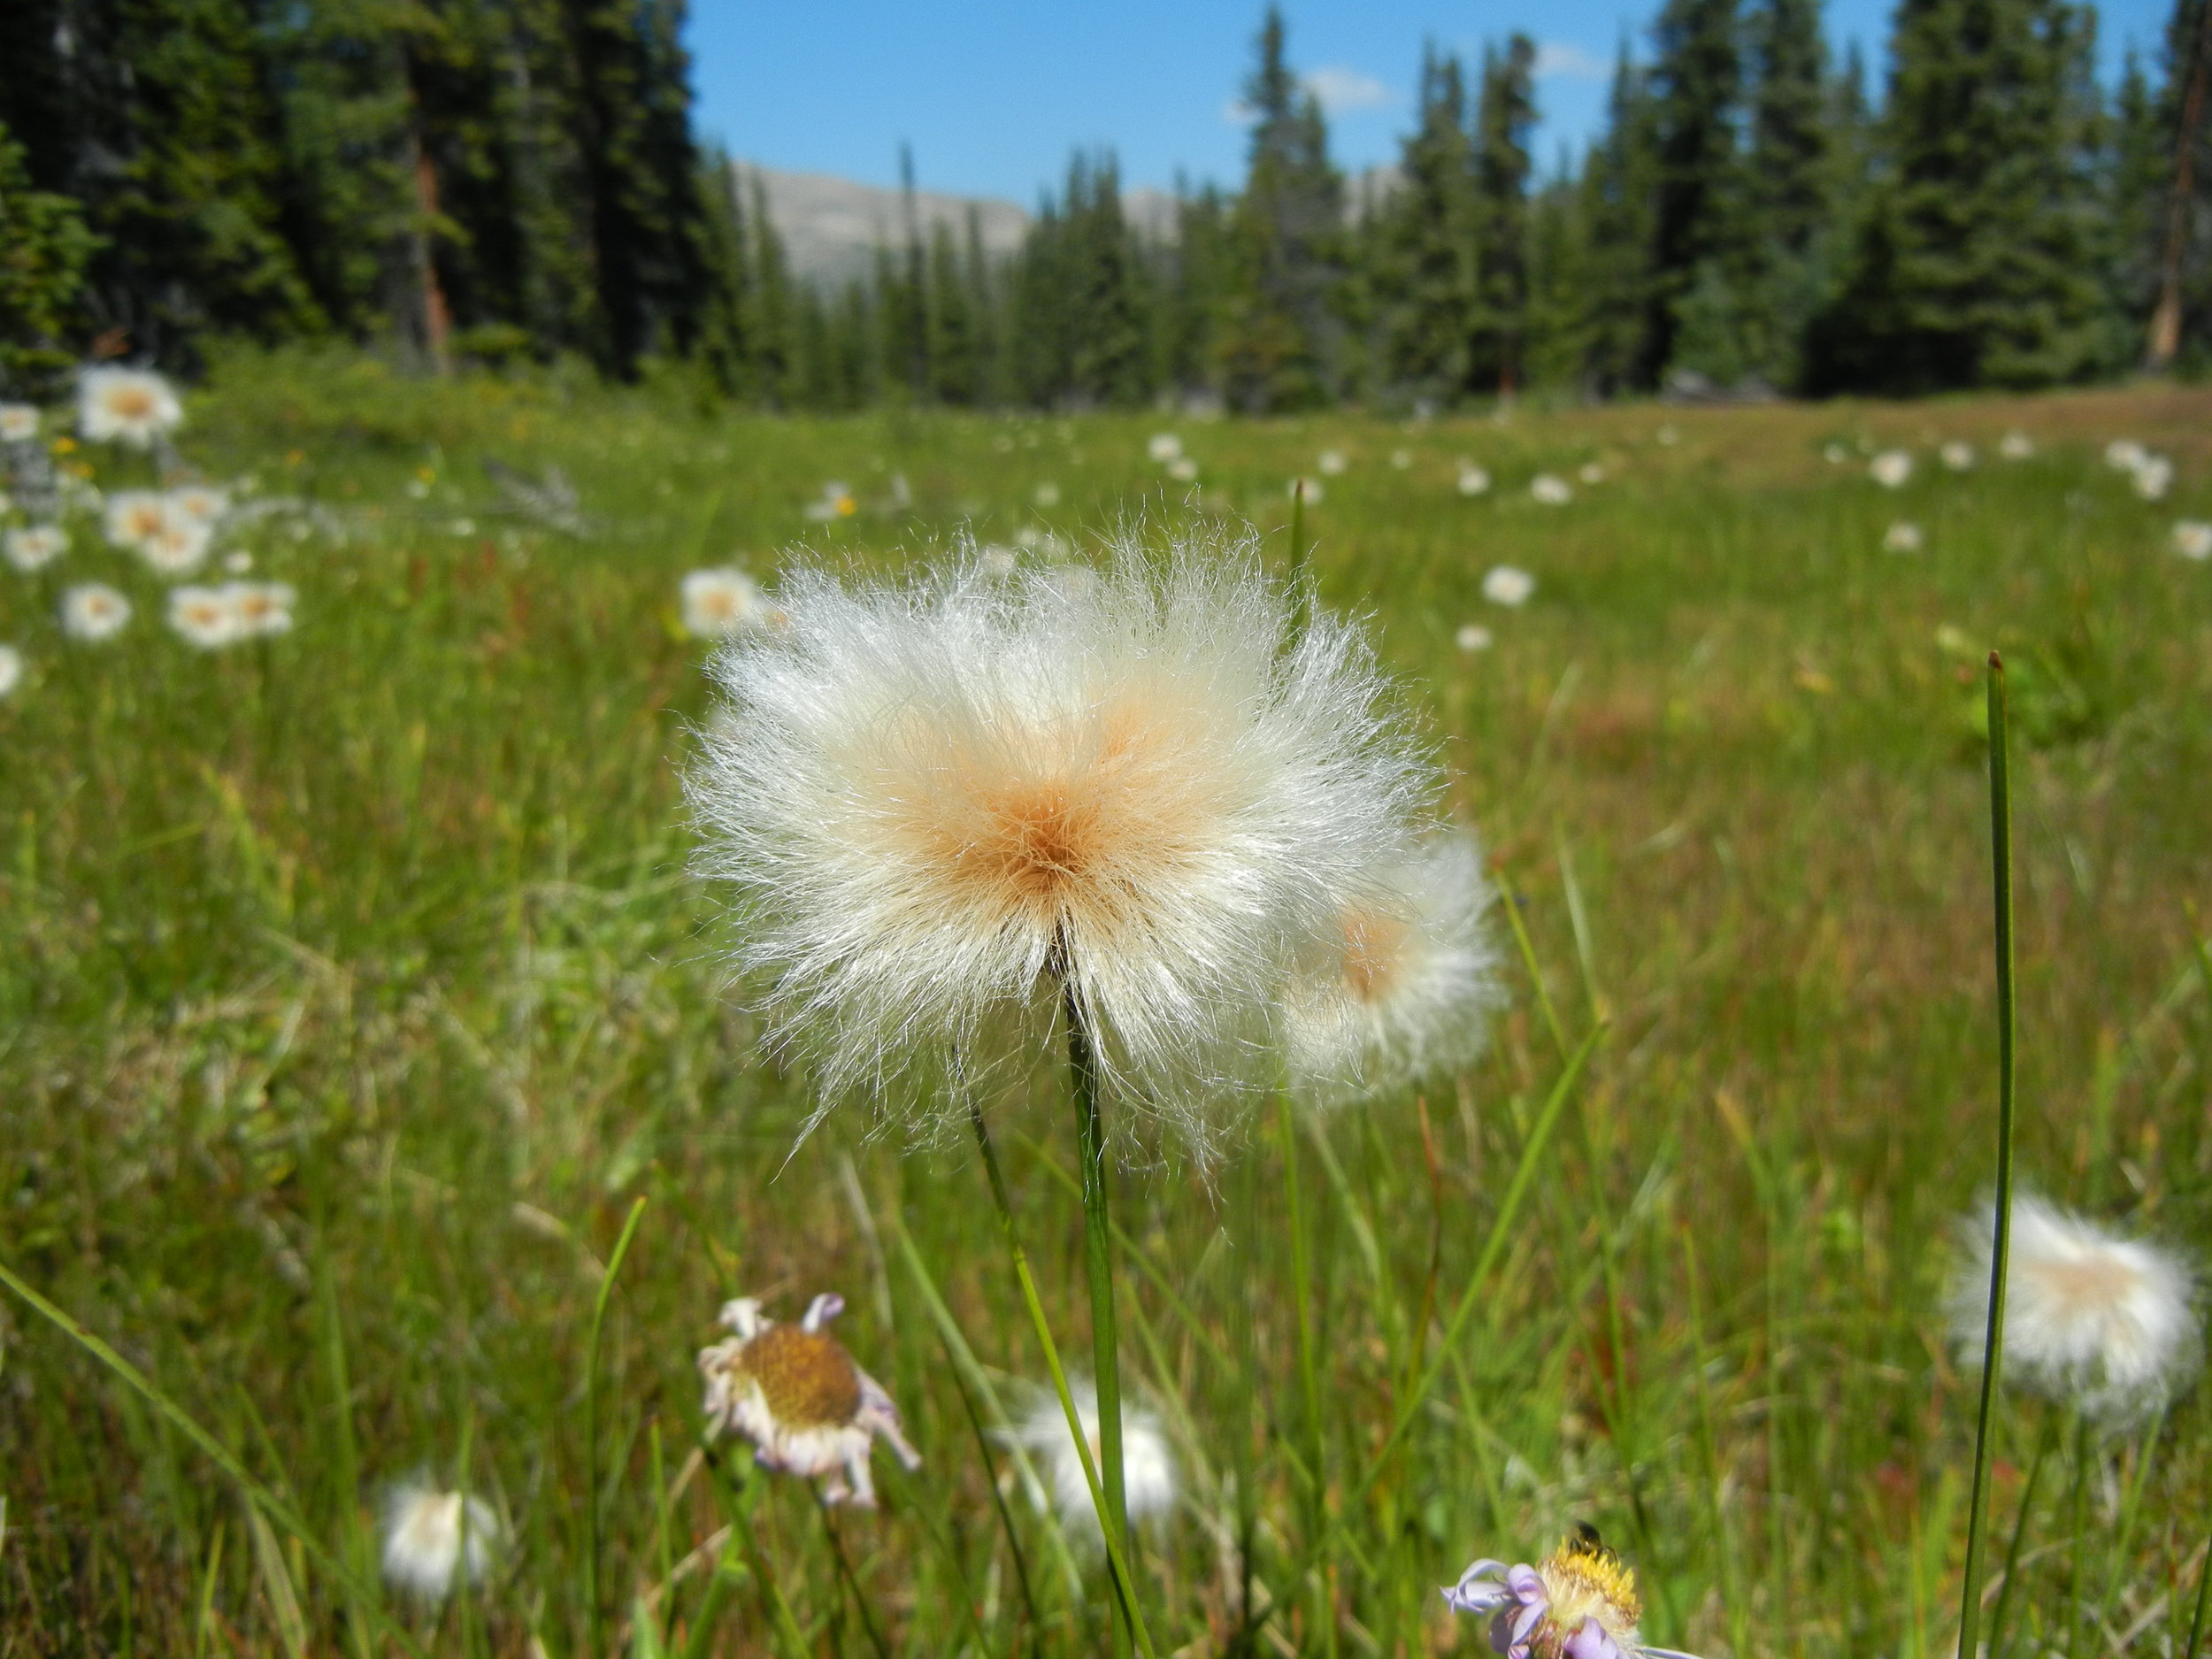 The elusive Colorado plant, Altai cottongrass: just one more reason to preserve and protect this special place.